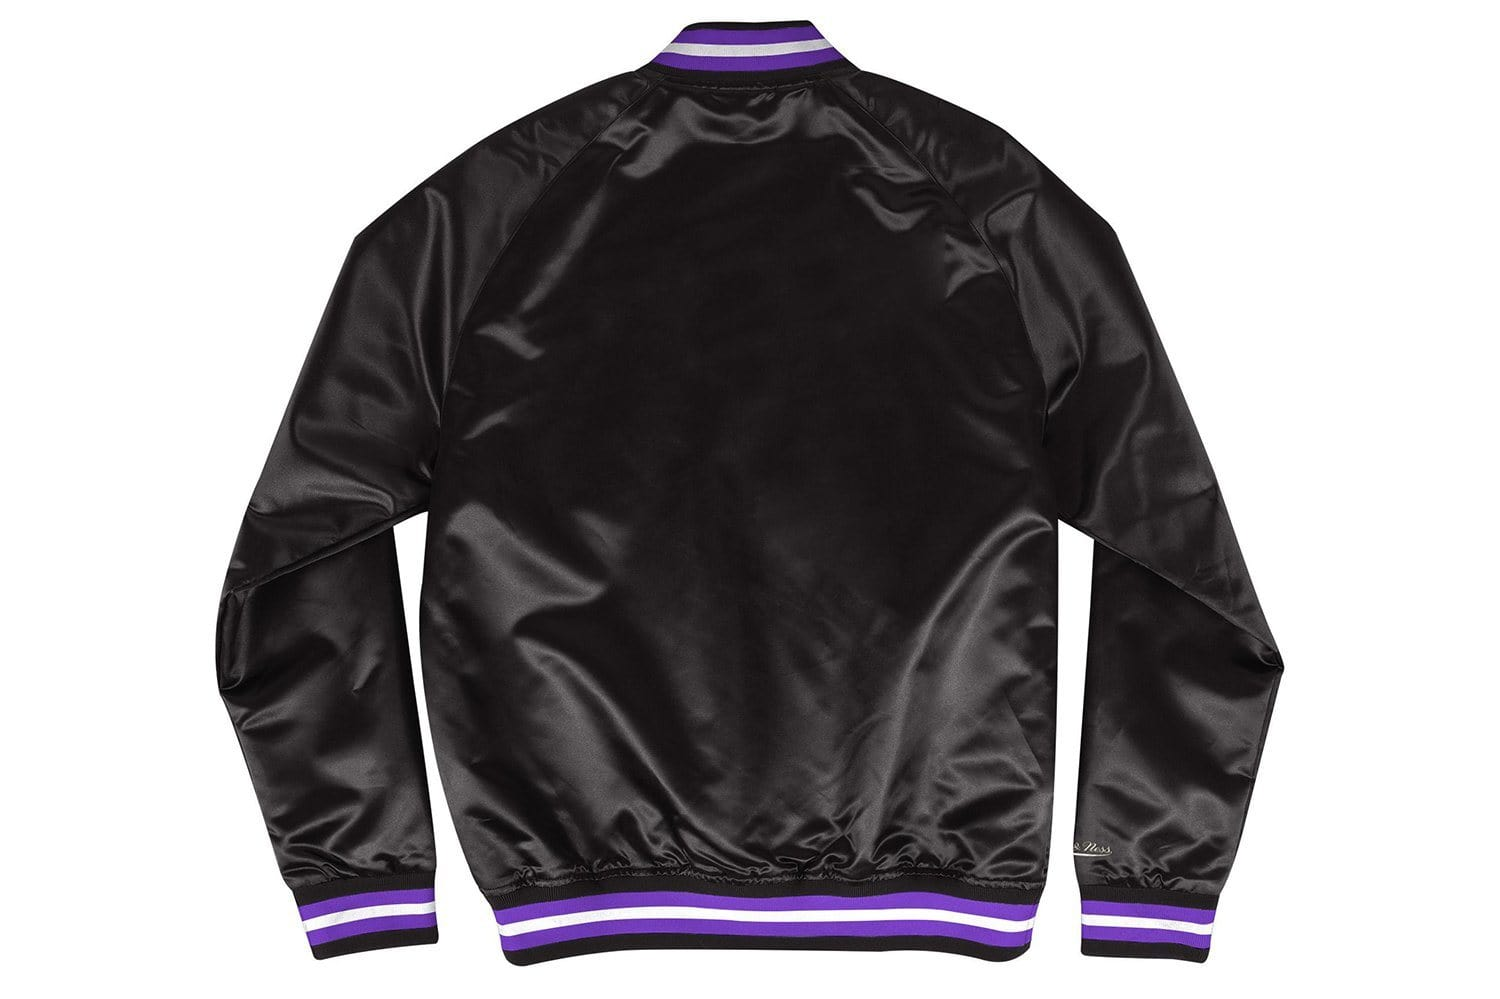 NBA RAPTORS LIGHTWEIGHT JACKET - LWSTJKS19TRAK MENS SOFTGOODS MITCHELL & NESS